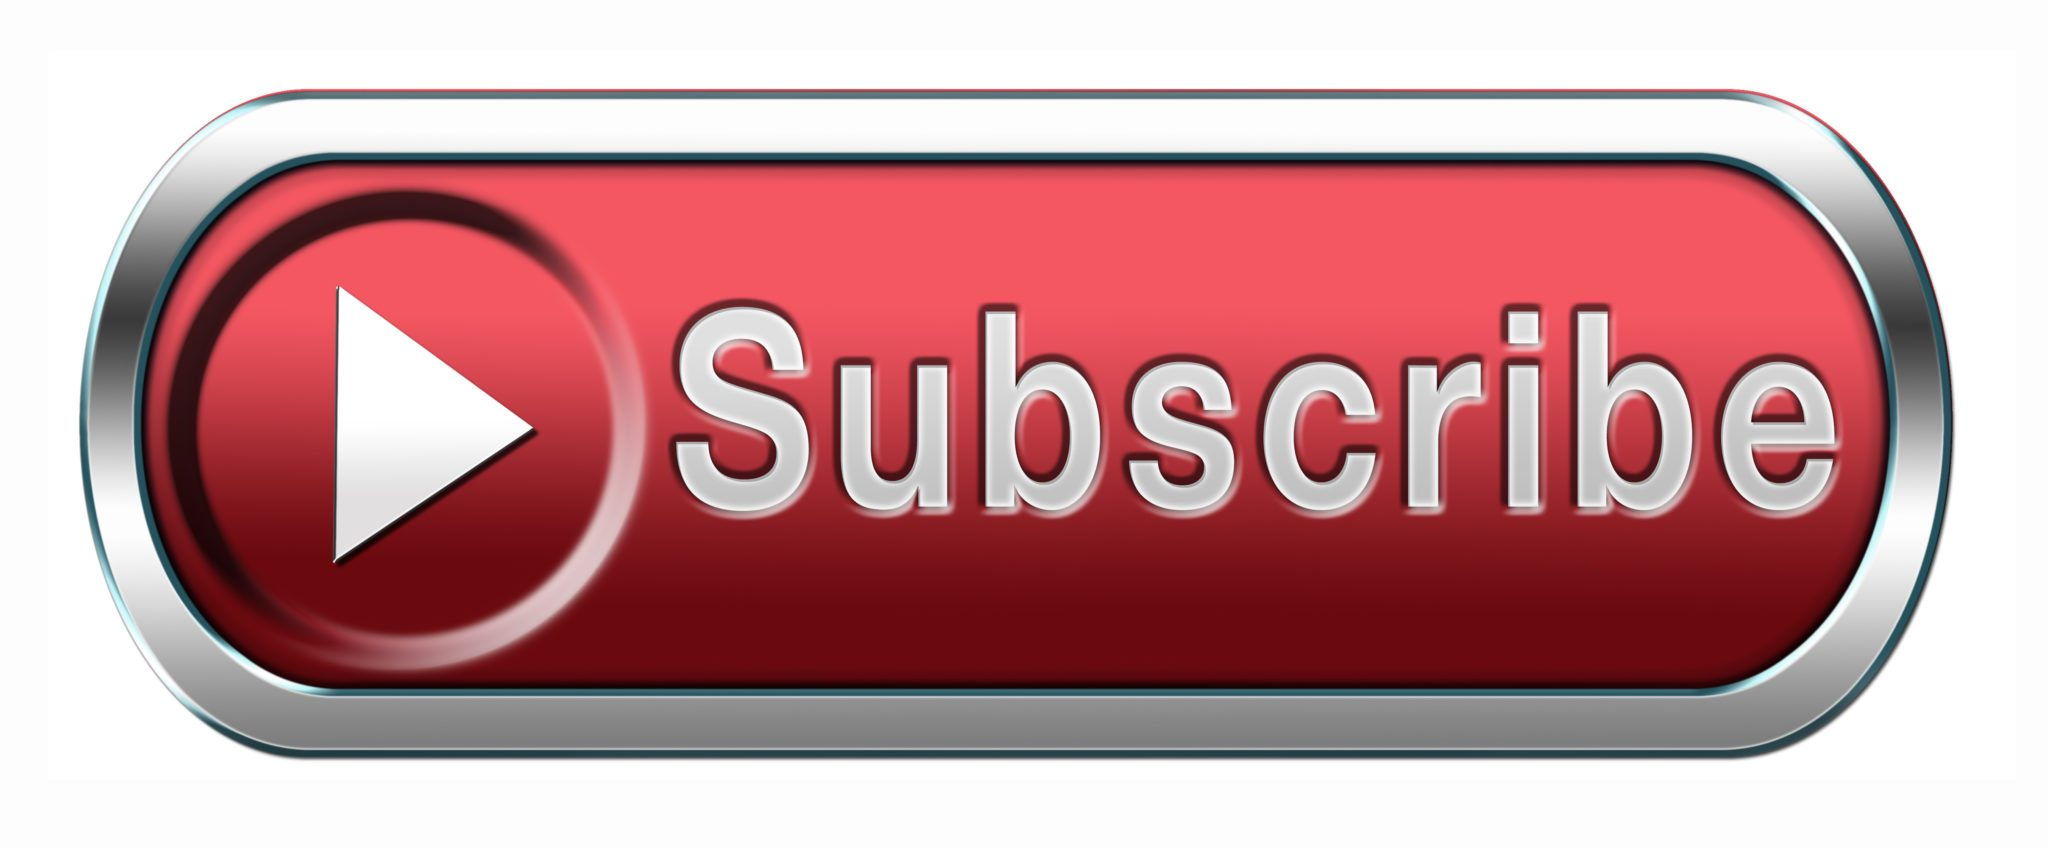 Subscription-button-AdobeStock_58527870.jpeg